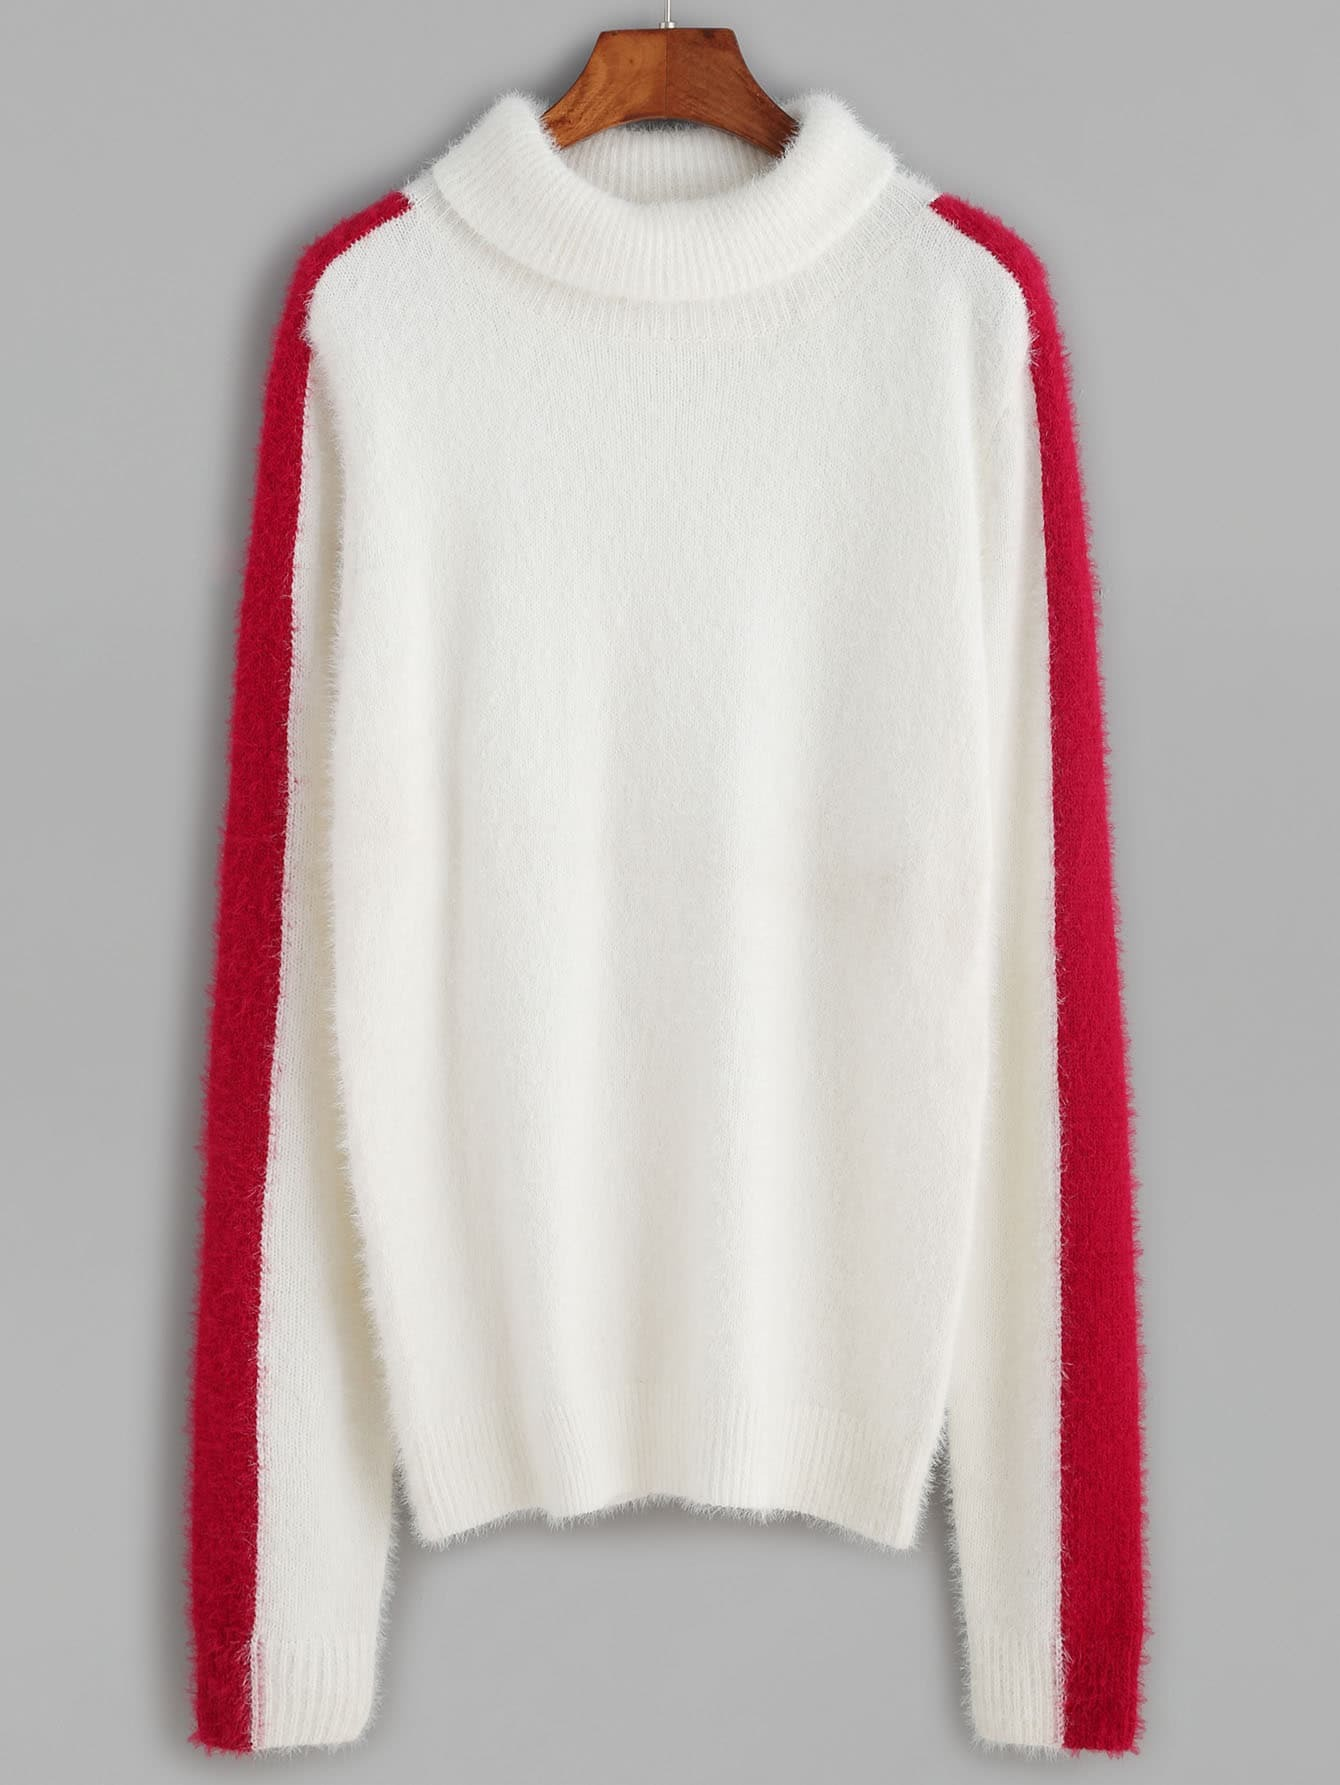 White Contrast Panel Fluffy Sweater sweater161025458